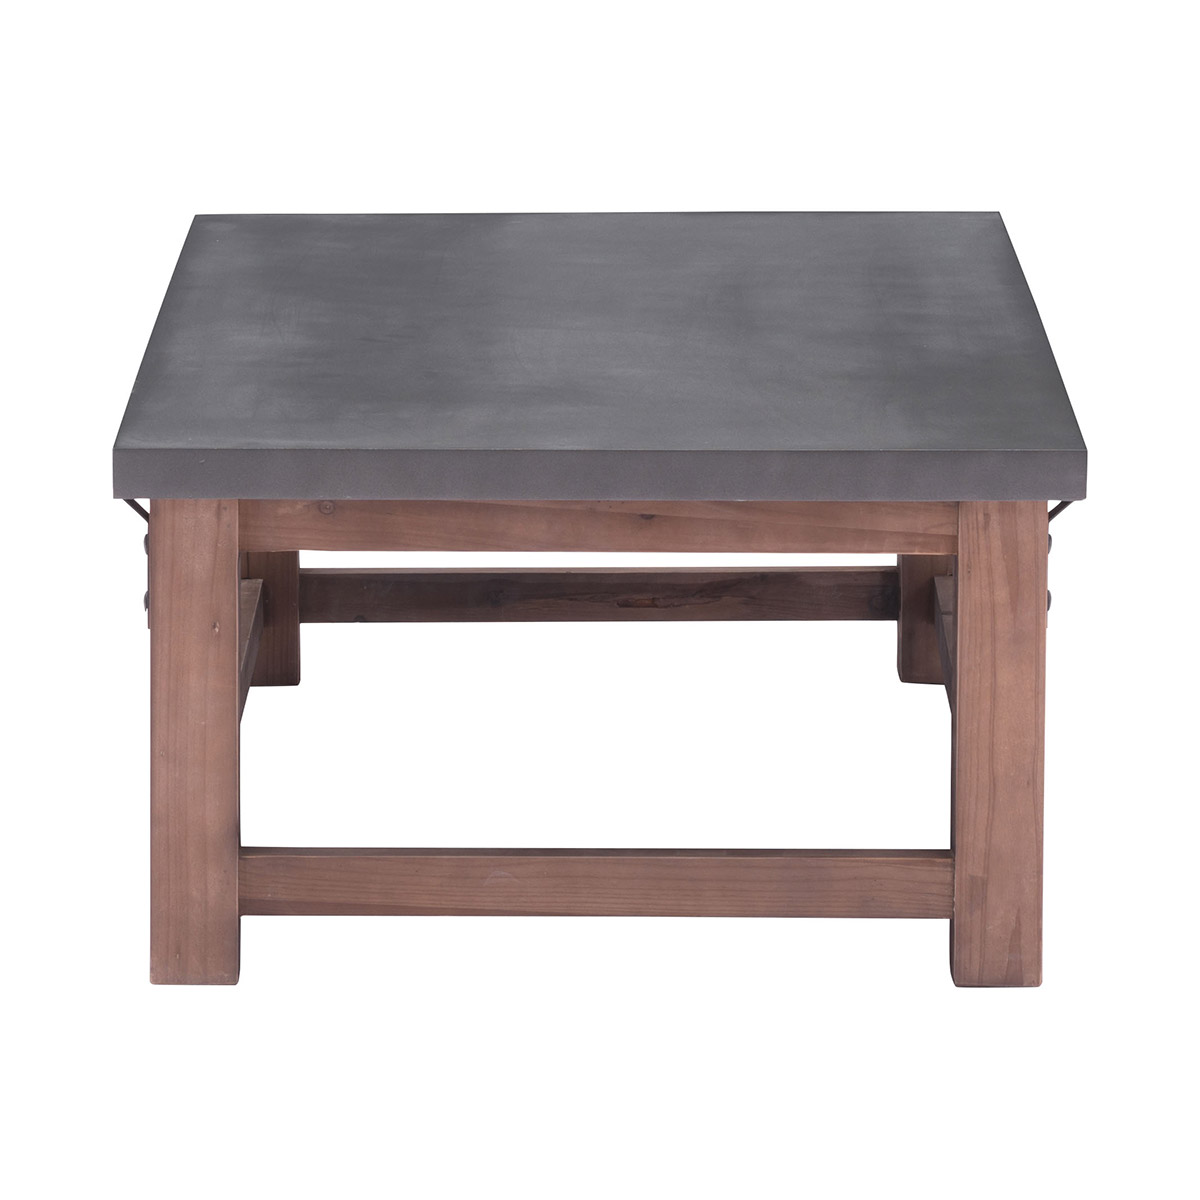 Zuo Era Greenpoint Coffee Table Gray Distressed Fir Boost Home